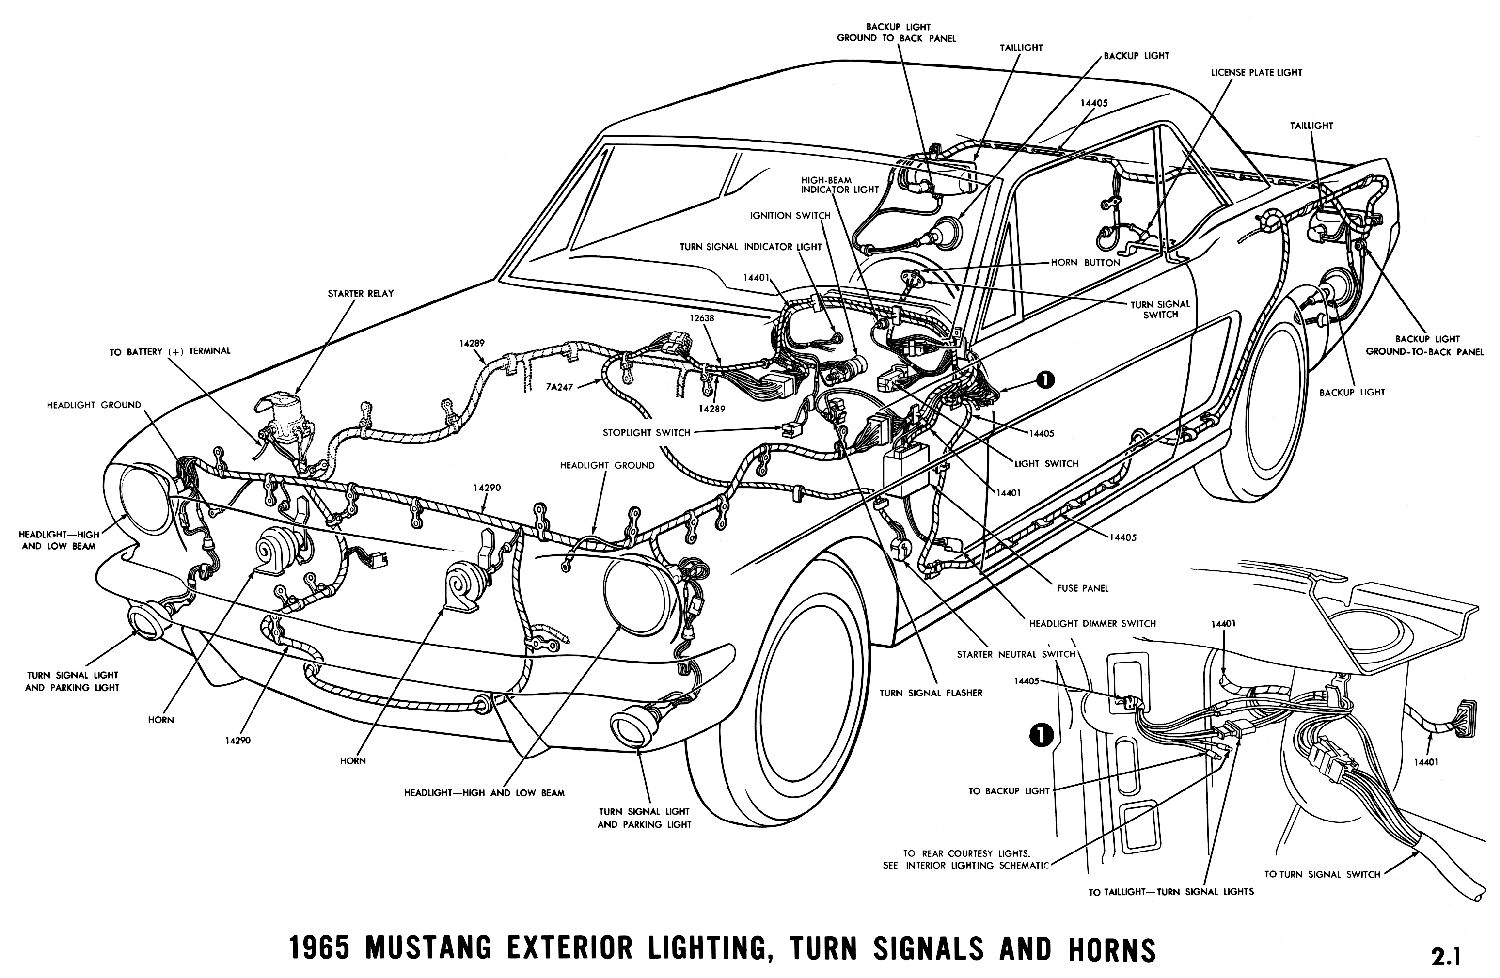 1965 Mustang Wiring Diagrams Average Joe Restoration 89 Toyota Pickup Lights Diagram Exterior Lighting Turn Signals And Horns Pictorial Or Schematic